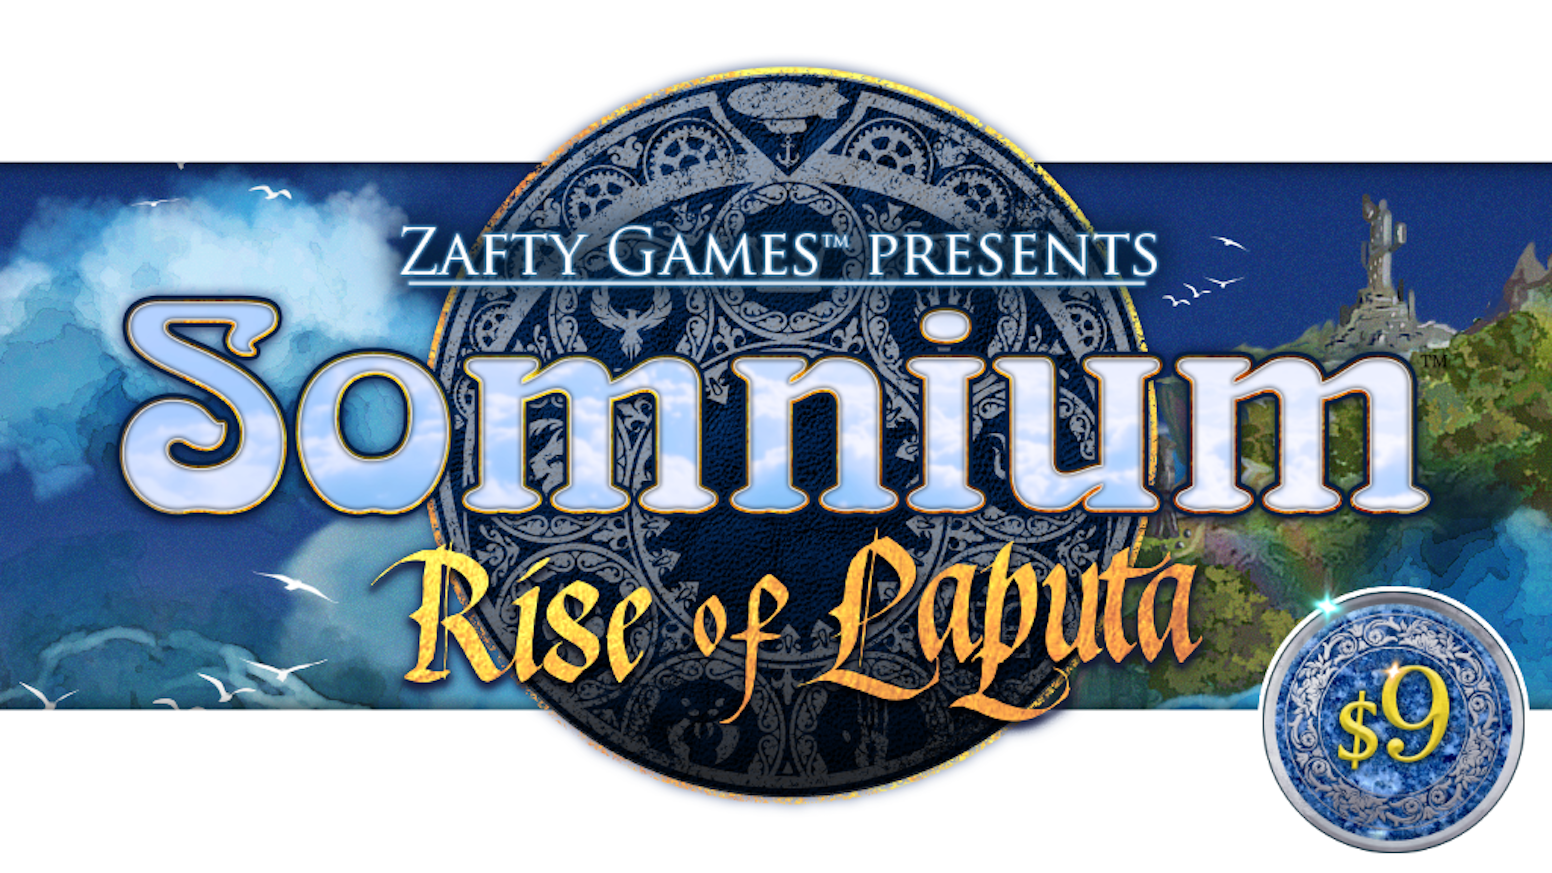 A newly discovered continent awaits you! Recruit nobility & sabotage rivals to become the ruler of Laputa in this 15 minute game.